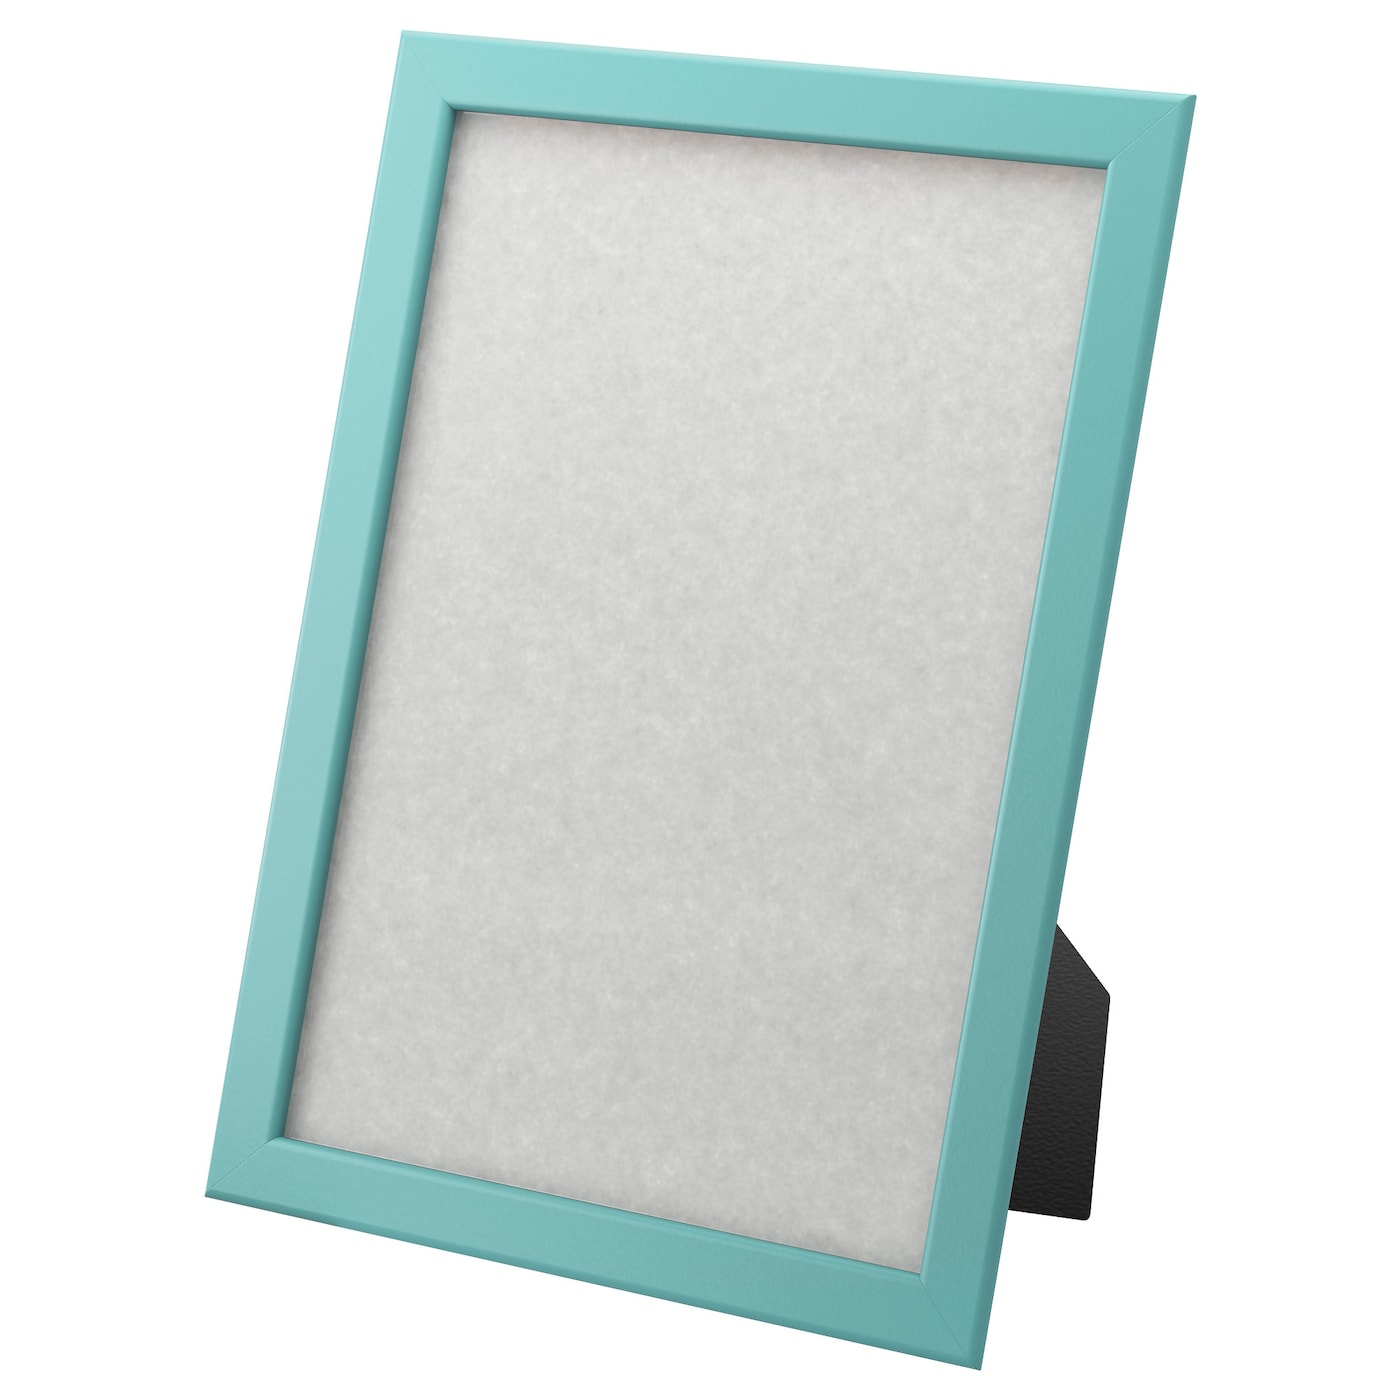 Photo Frames & Multi Picture Frames | IKEA